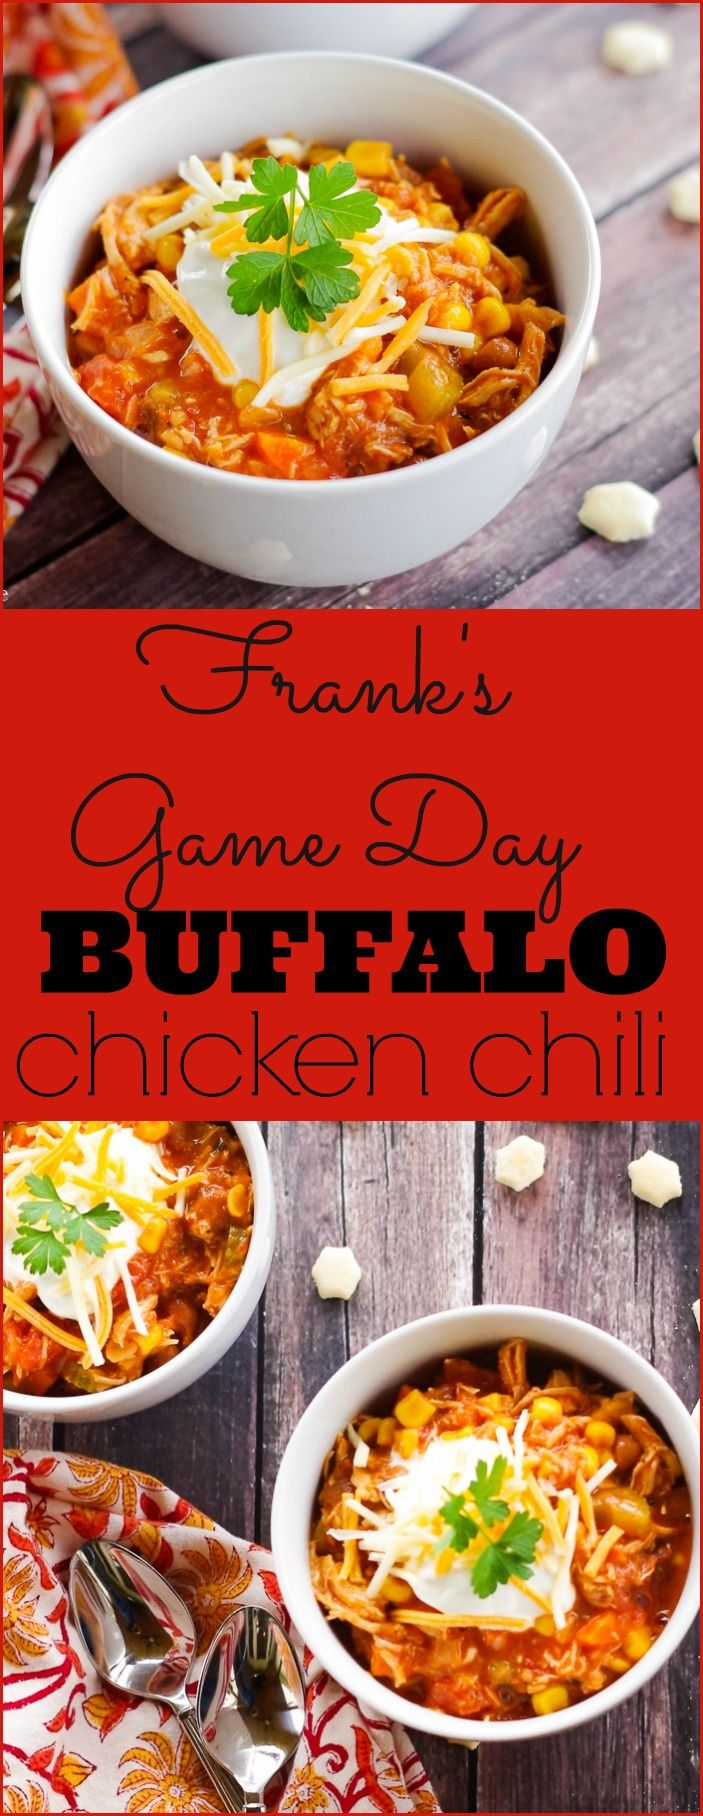 Football season is in full swing and I have the perfect recipe that combines two game day favorites in one - Frank's Game Day Buffalo Chicken Chili.